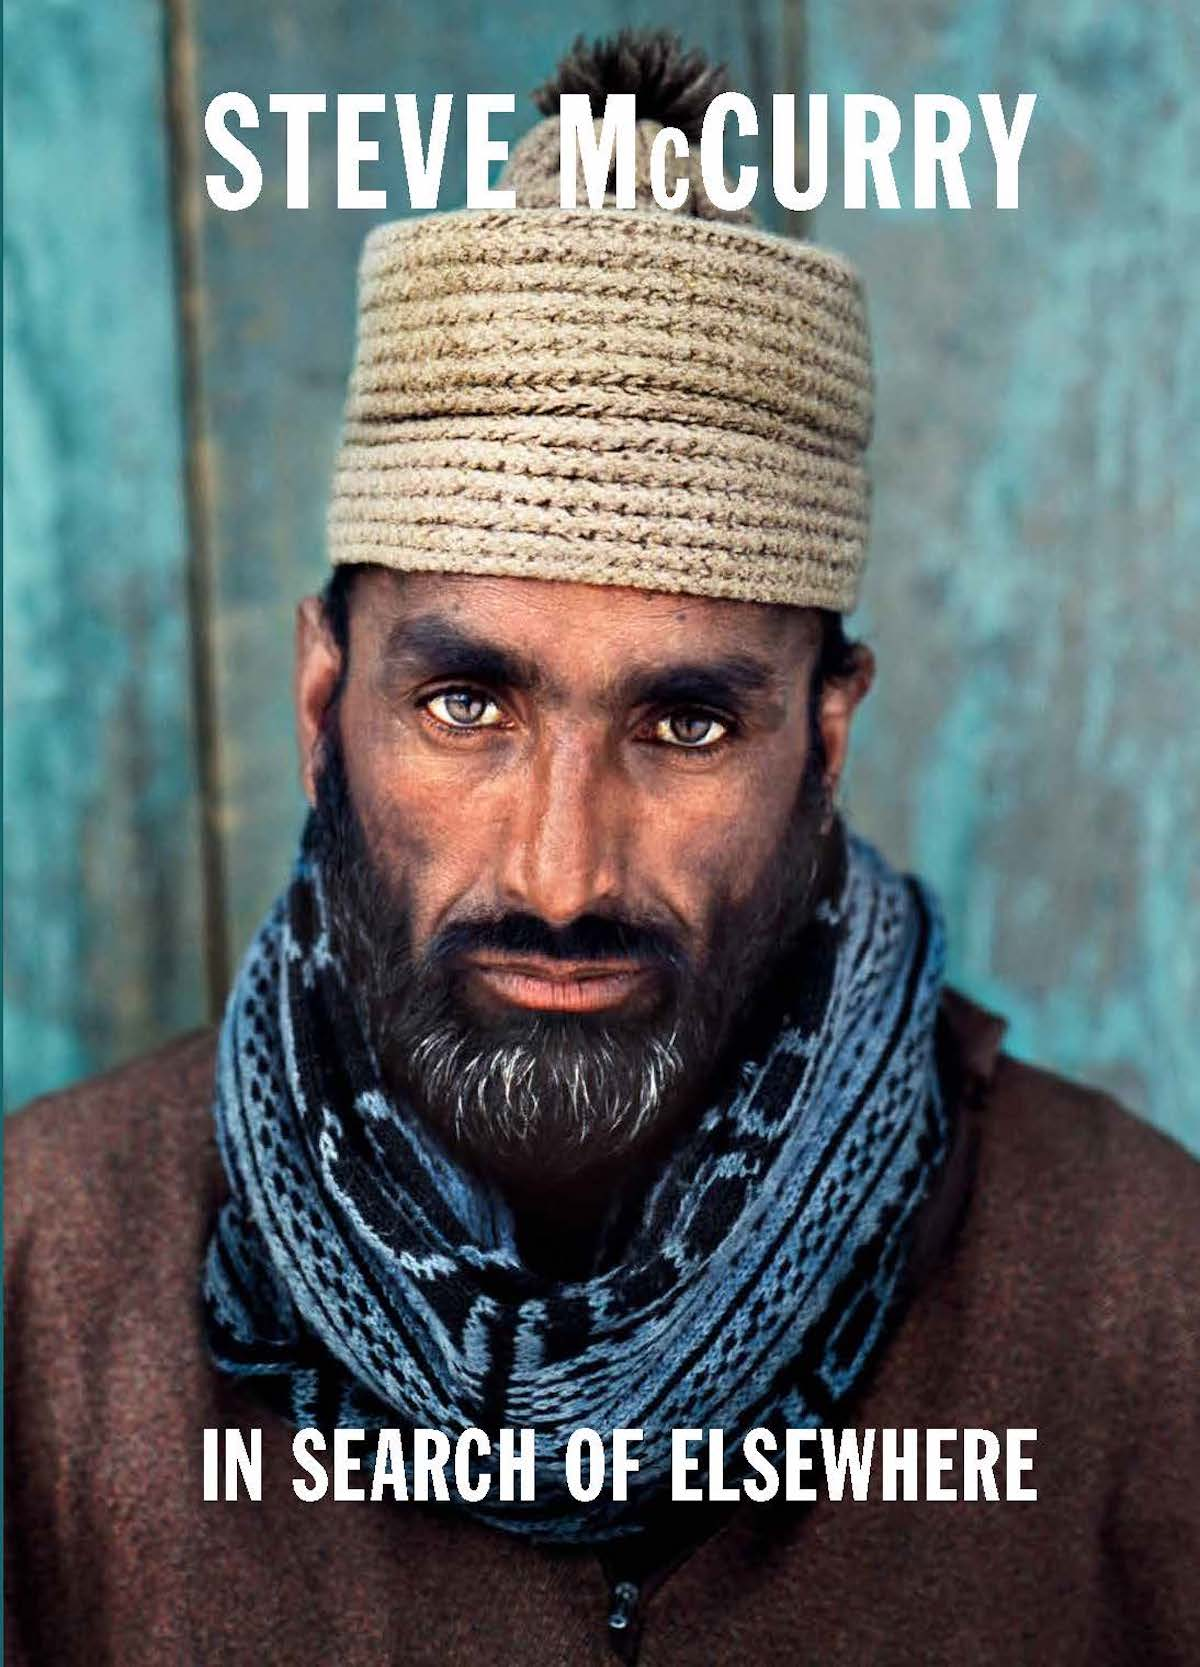 Cover of Steve McCurry Book